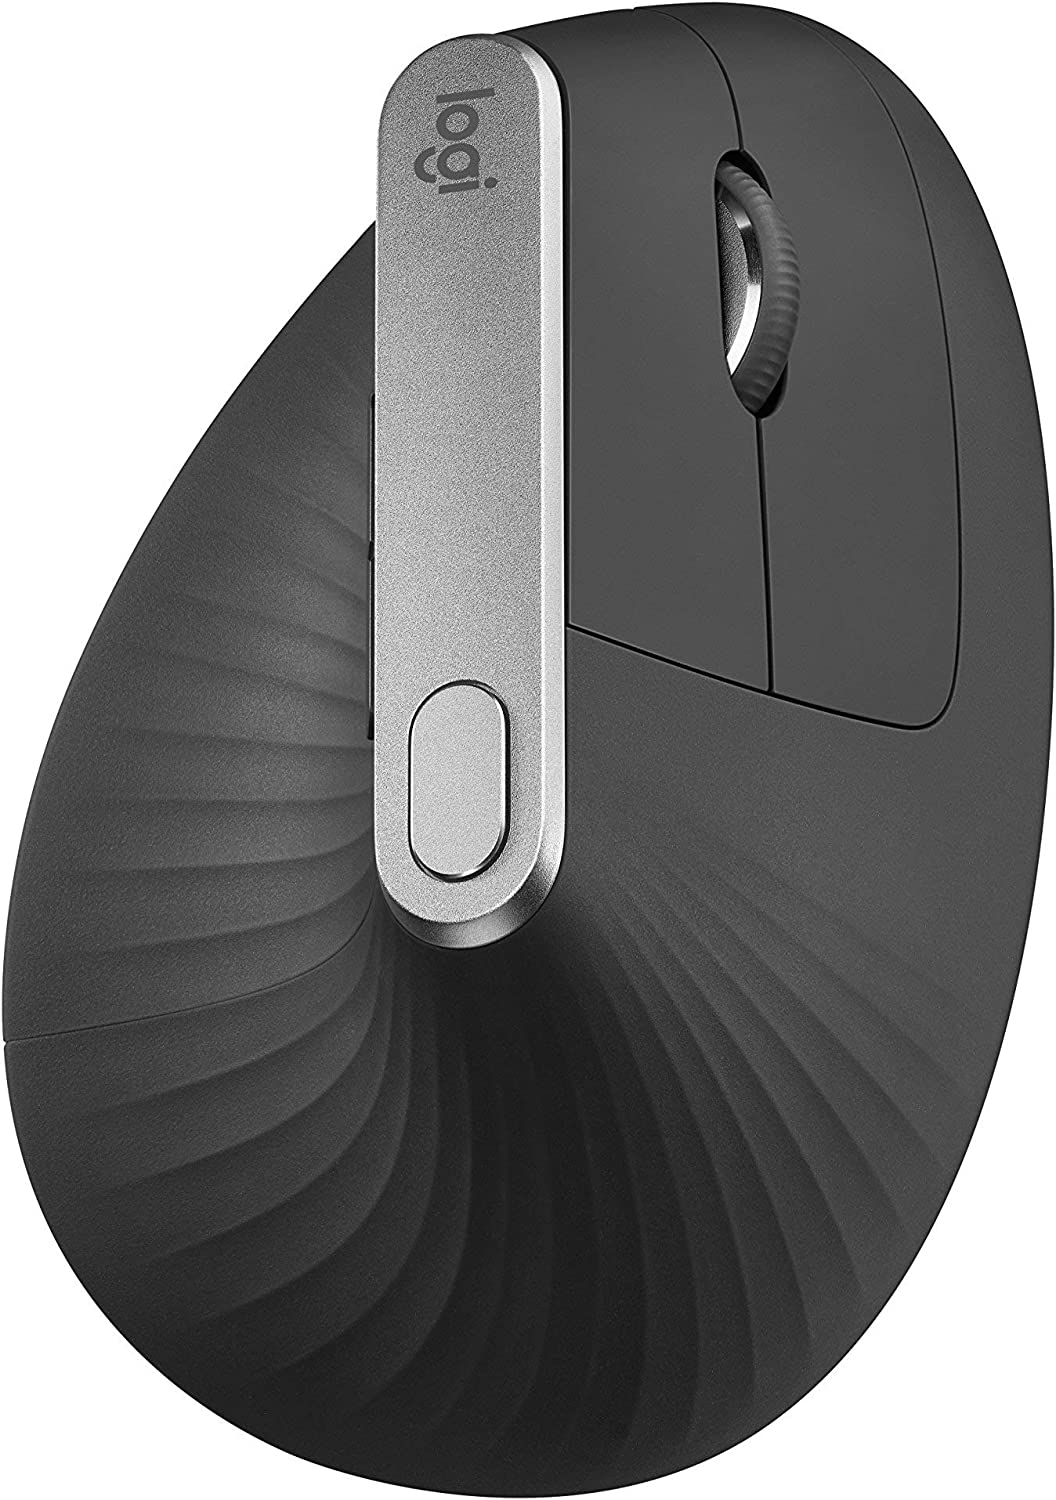 Logitech MX Vertical Advanced Ergonomic Mouse, Wireless via Bluetooth or Included USB Receiver (Renewed)